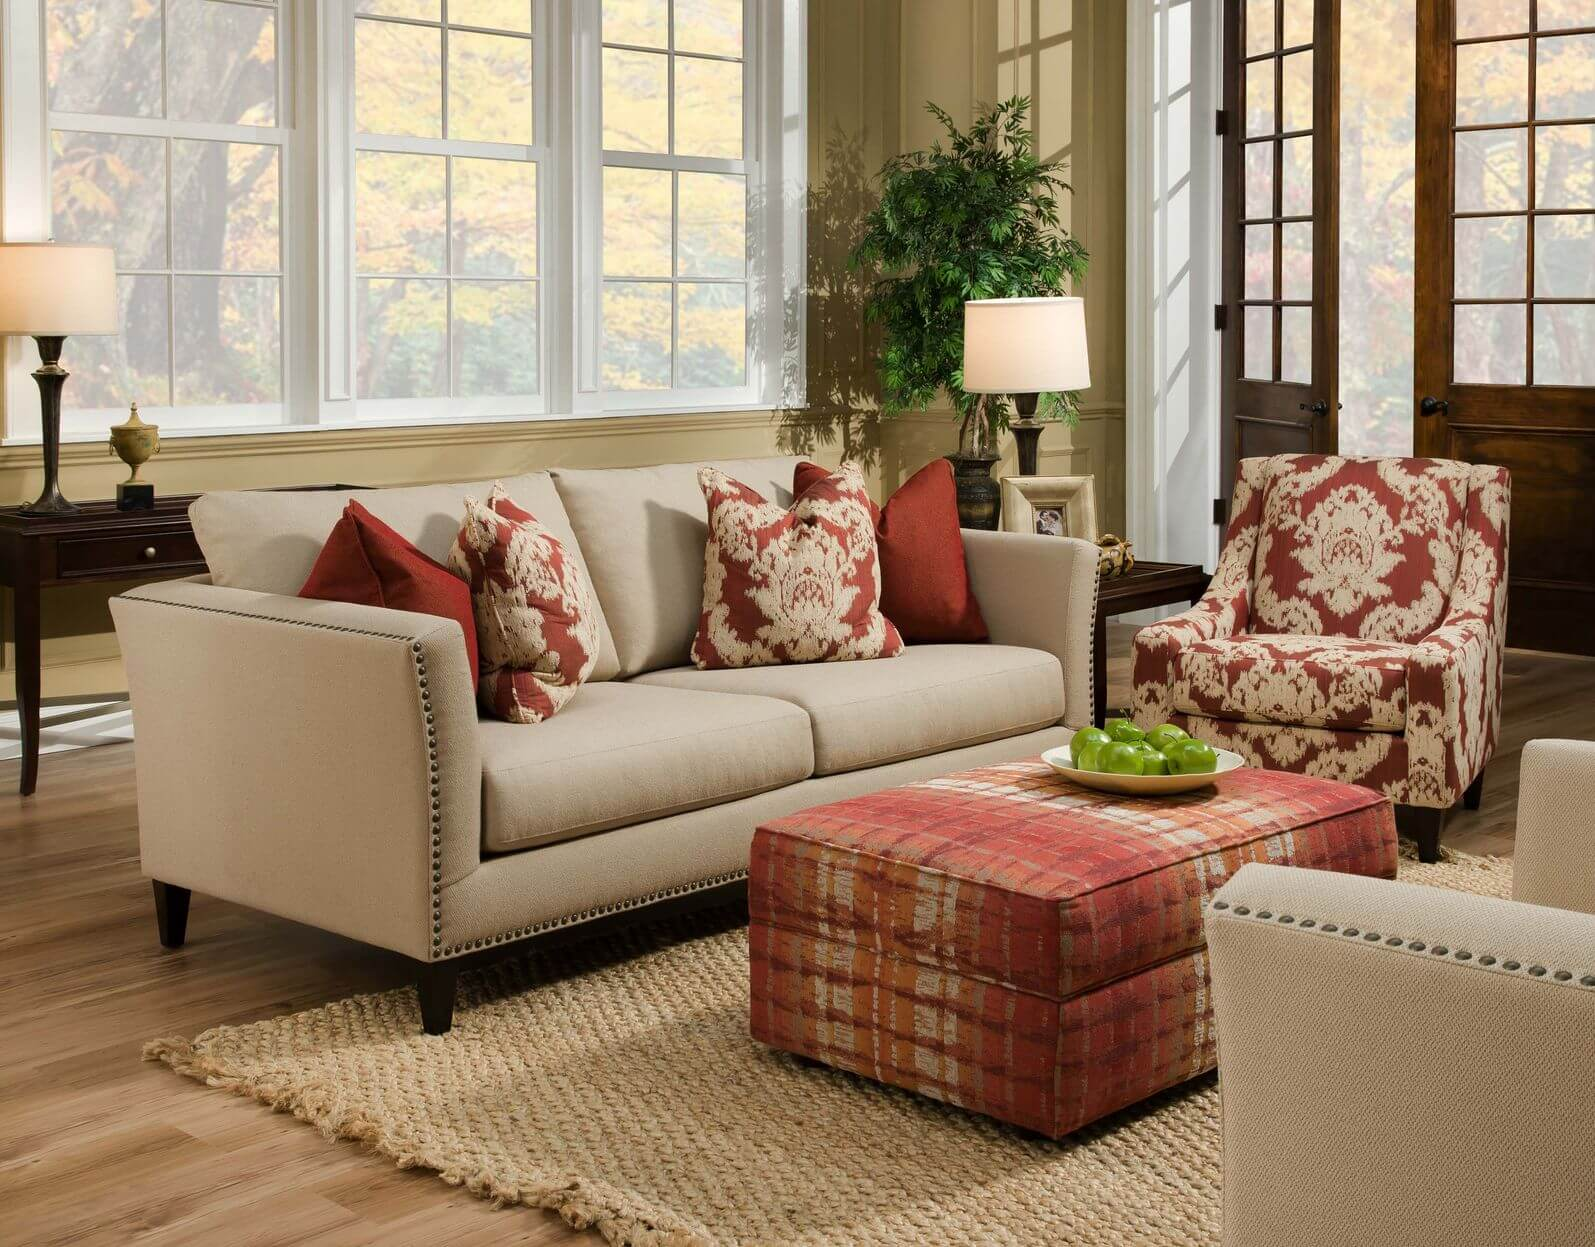 Beige twin couches face each other over natural hardwood flooring and tan rug in this living room featuring red patterned fabric rectangle ottoman.